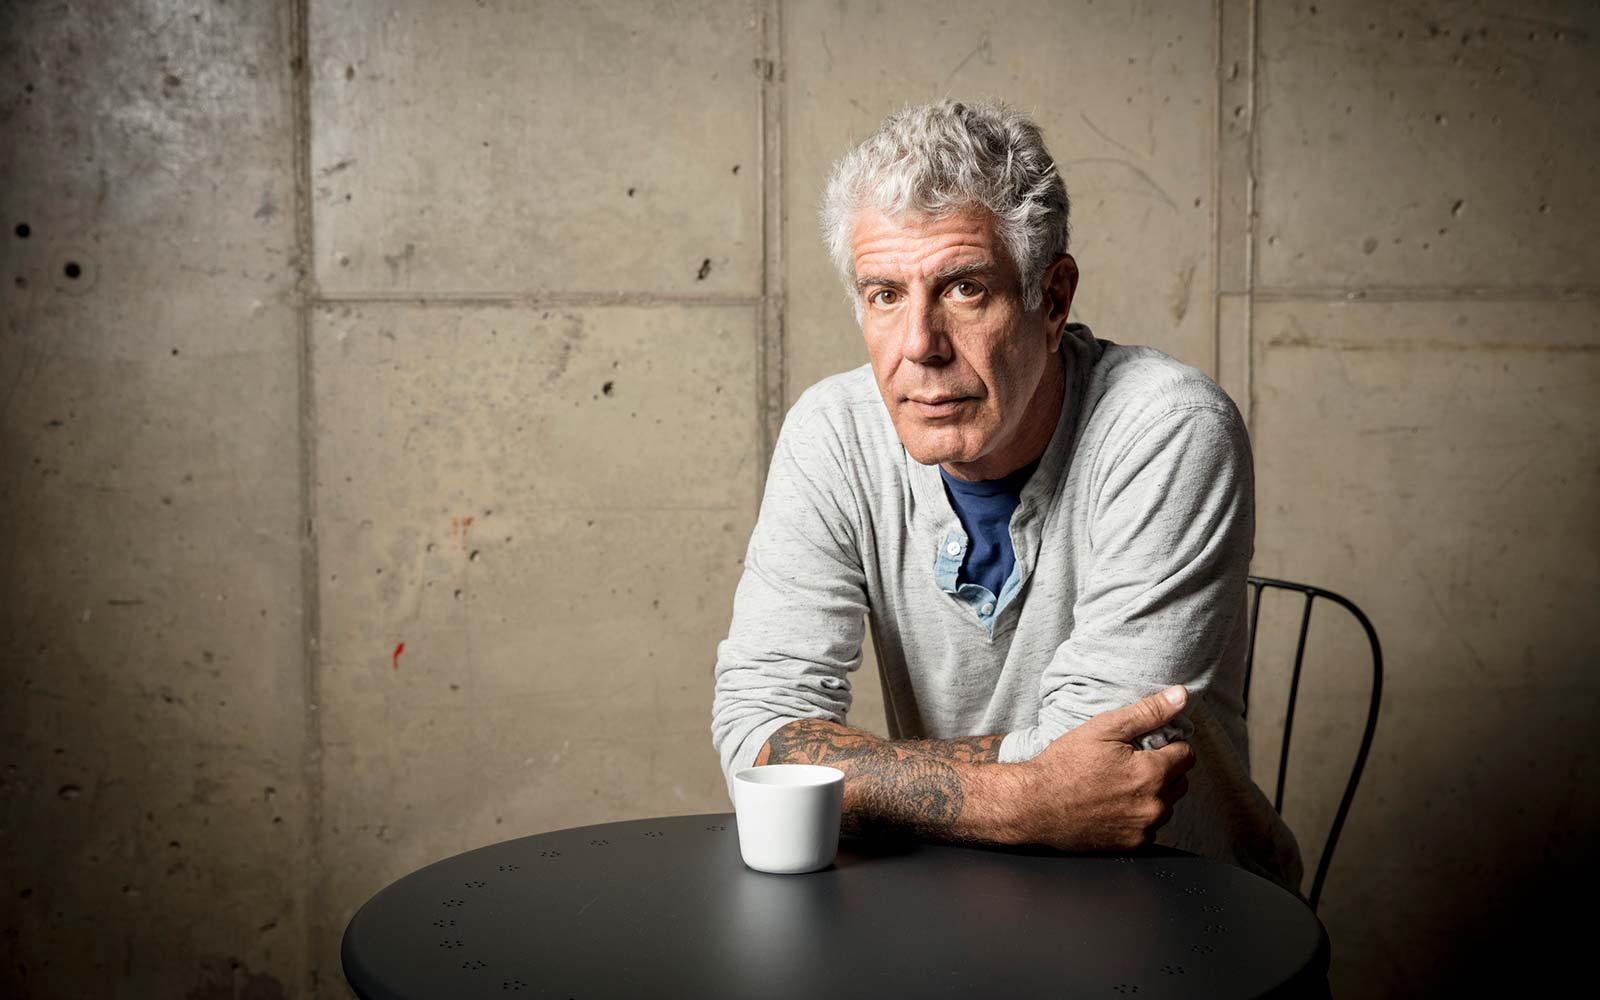 Anthony Bourdain Weighs Pittsburgh's Transition in Latest 'Parts Unknown'